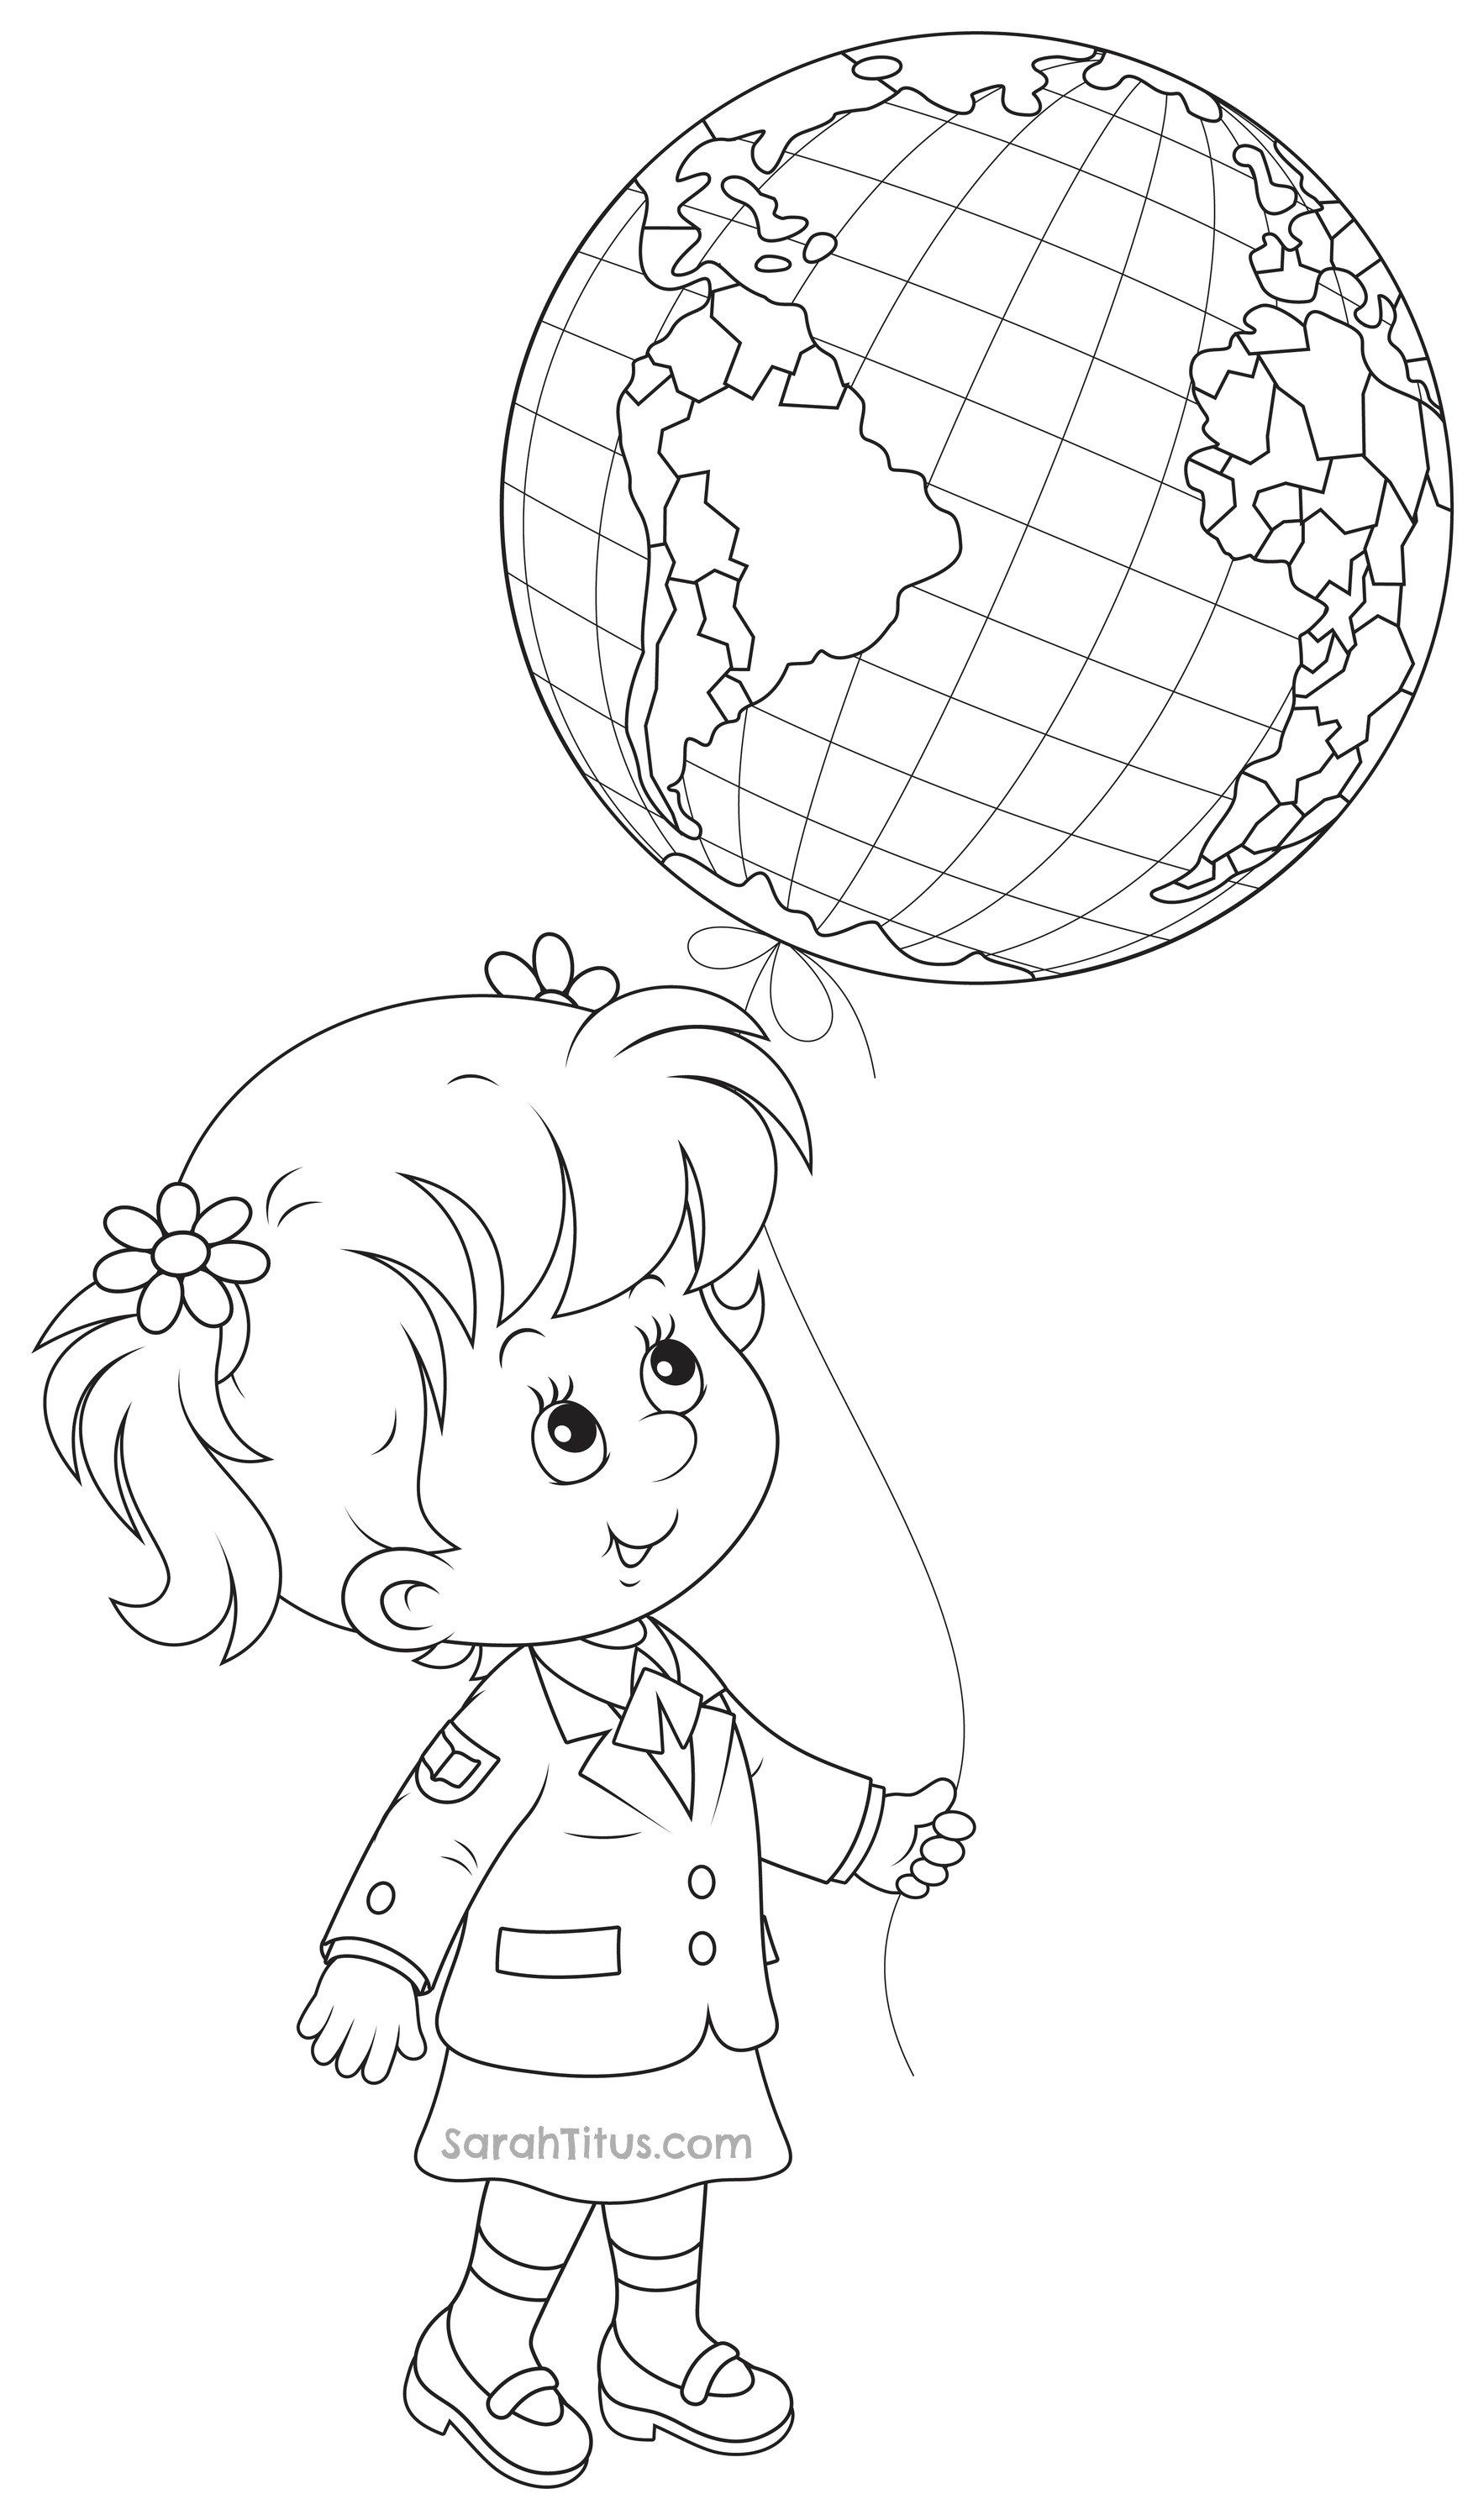 Back to school coloring pages counseling office thumb prints and